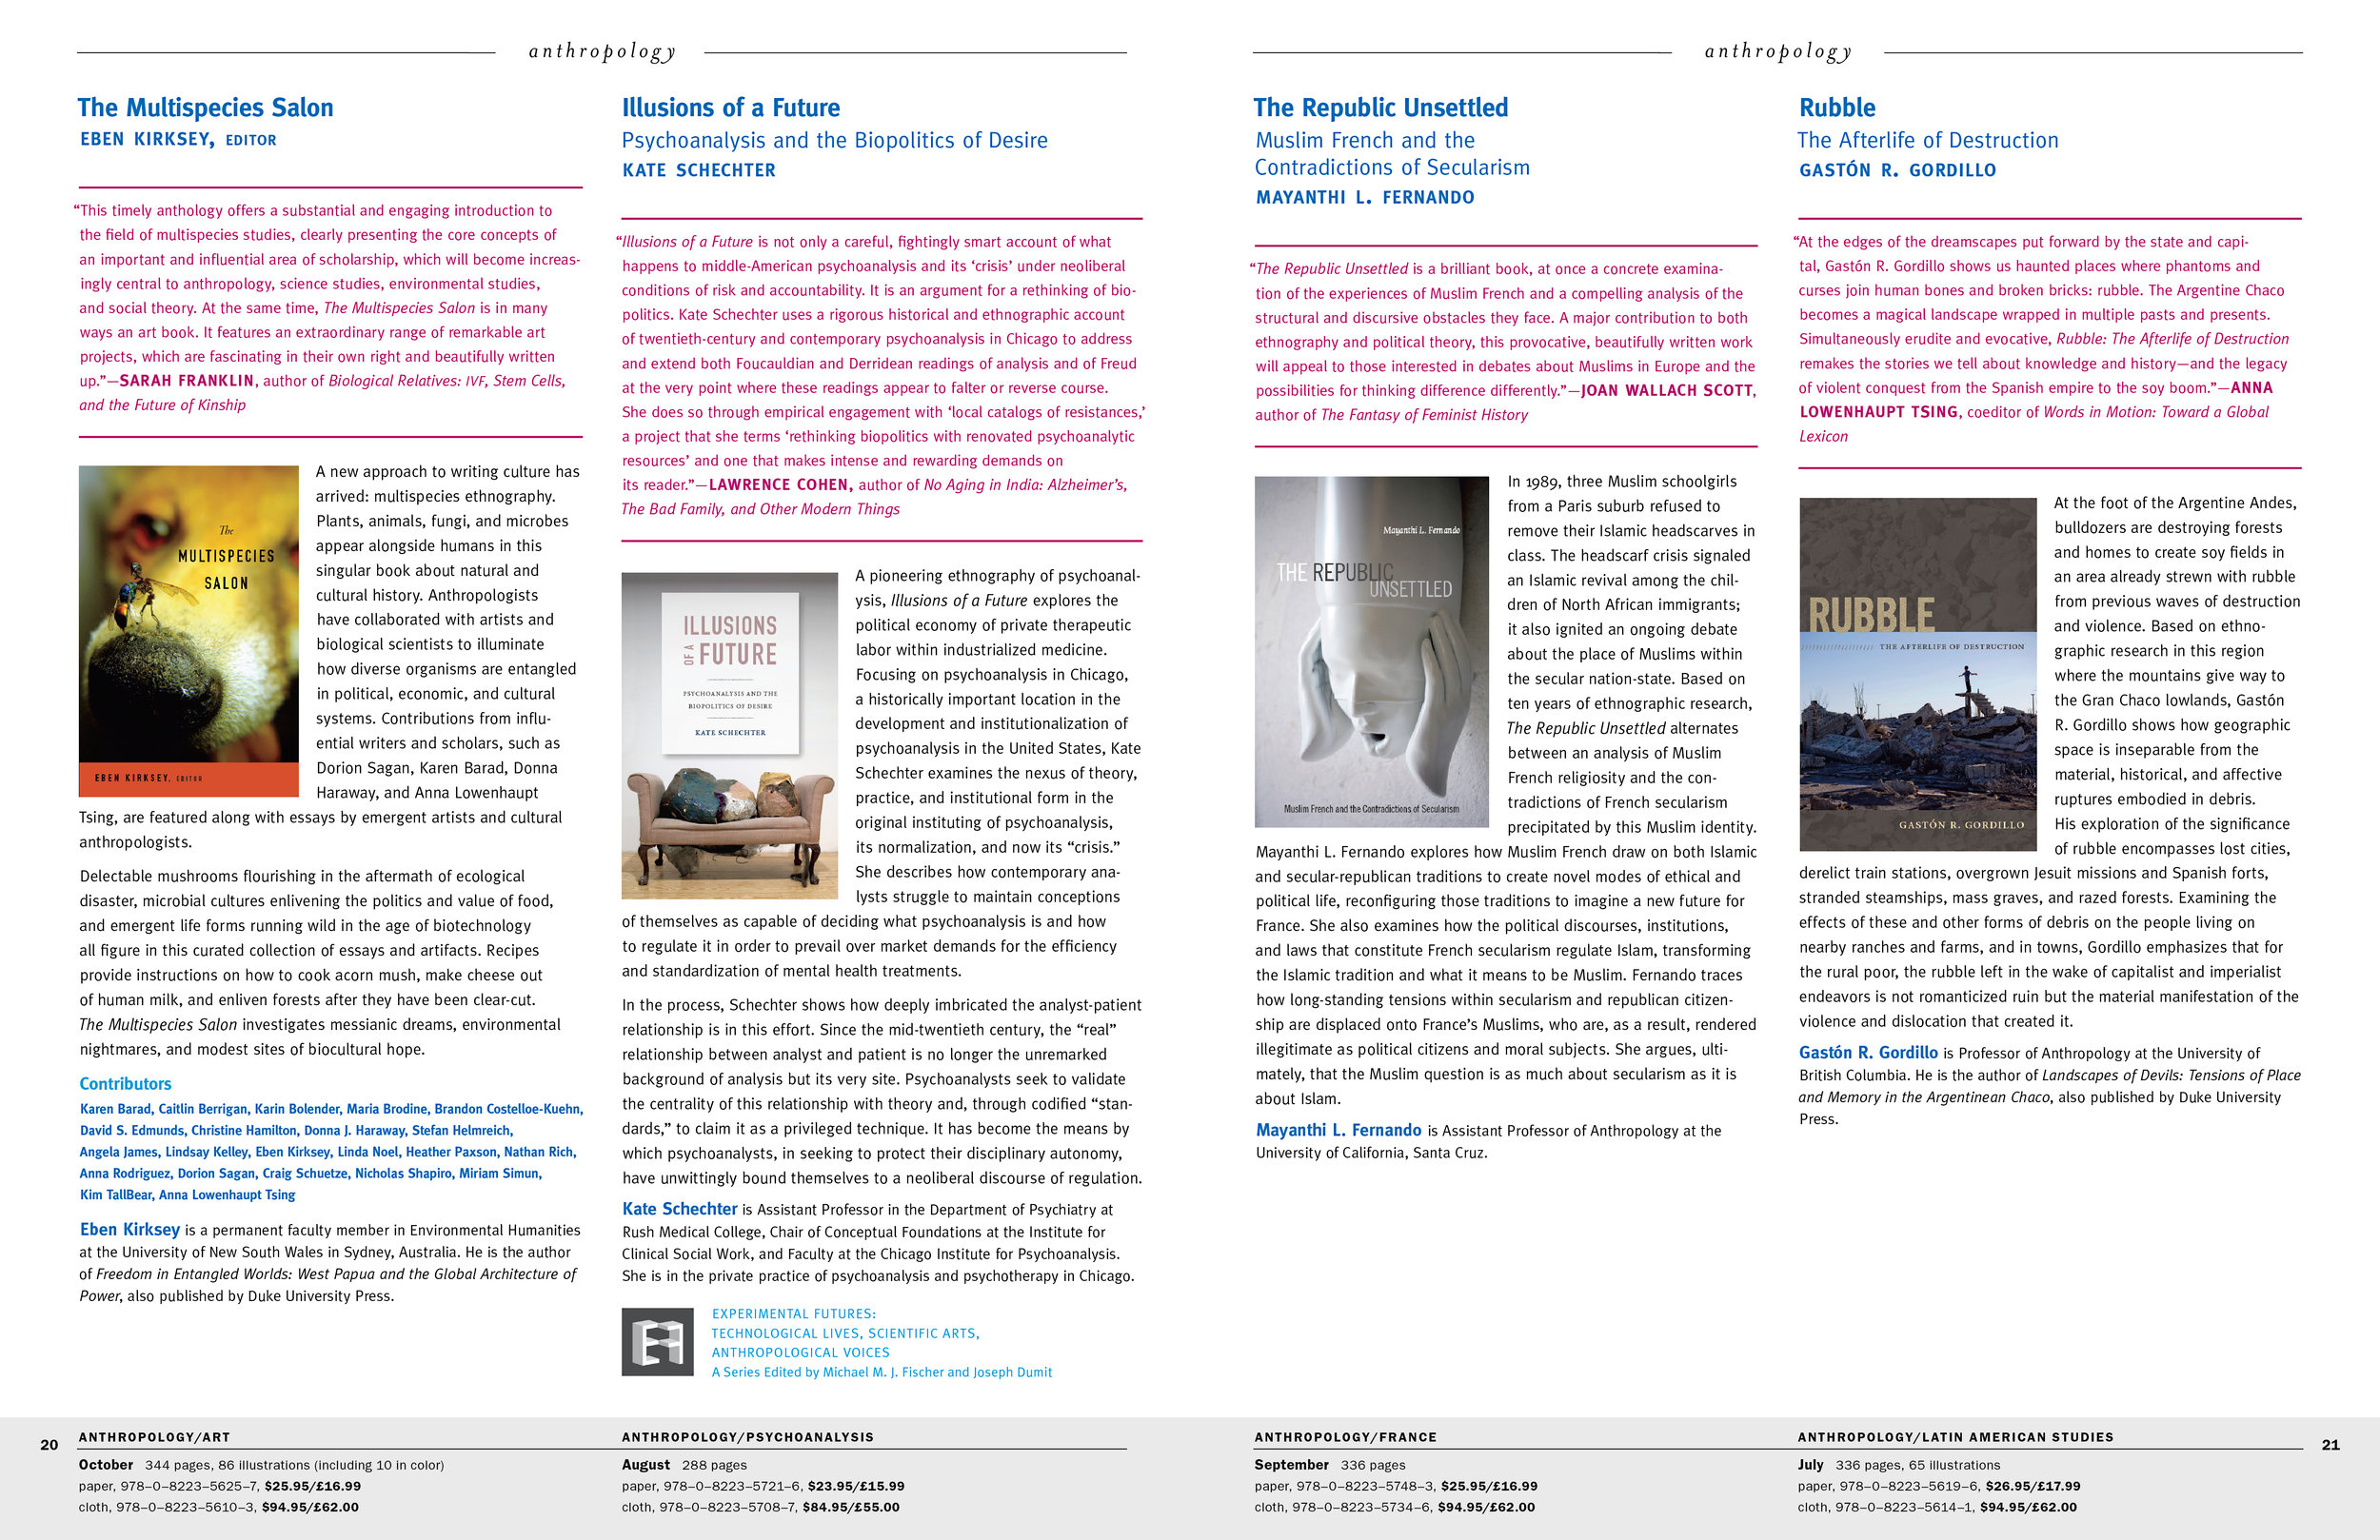 Each issue of the DUP catalog featured 50plus new titles as well as a journals section and a backlist section. New titles section consisted of descriptive copy, book covers, blurbs about the book, author bios, and biblio information.